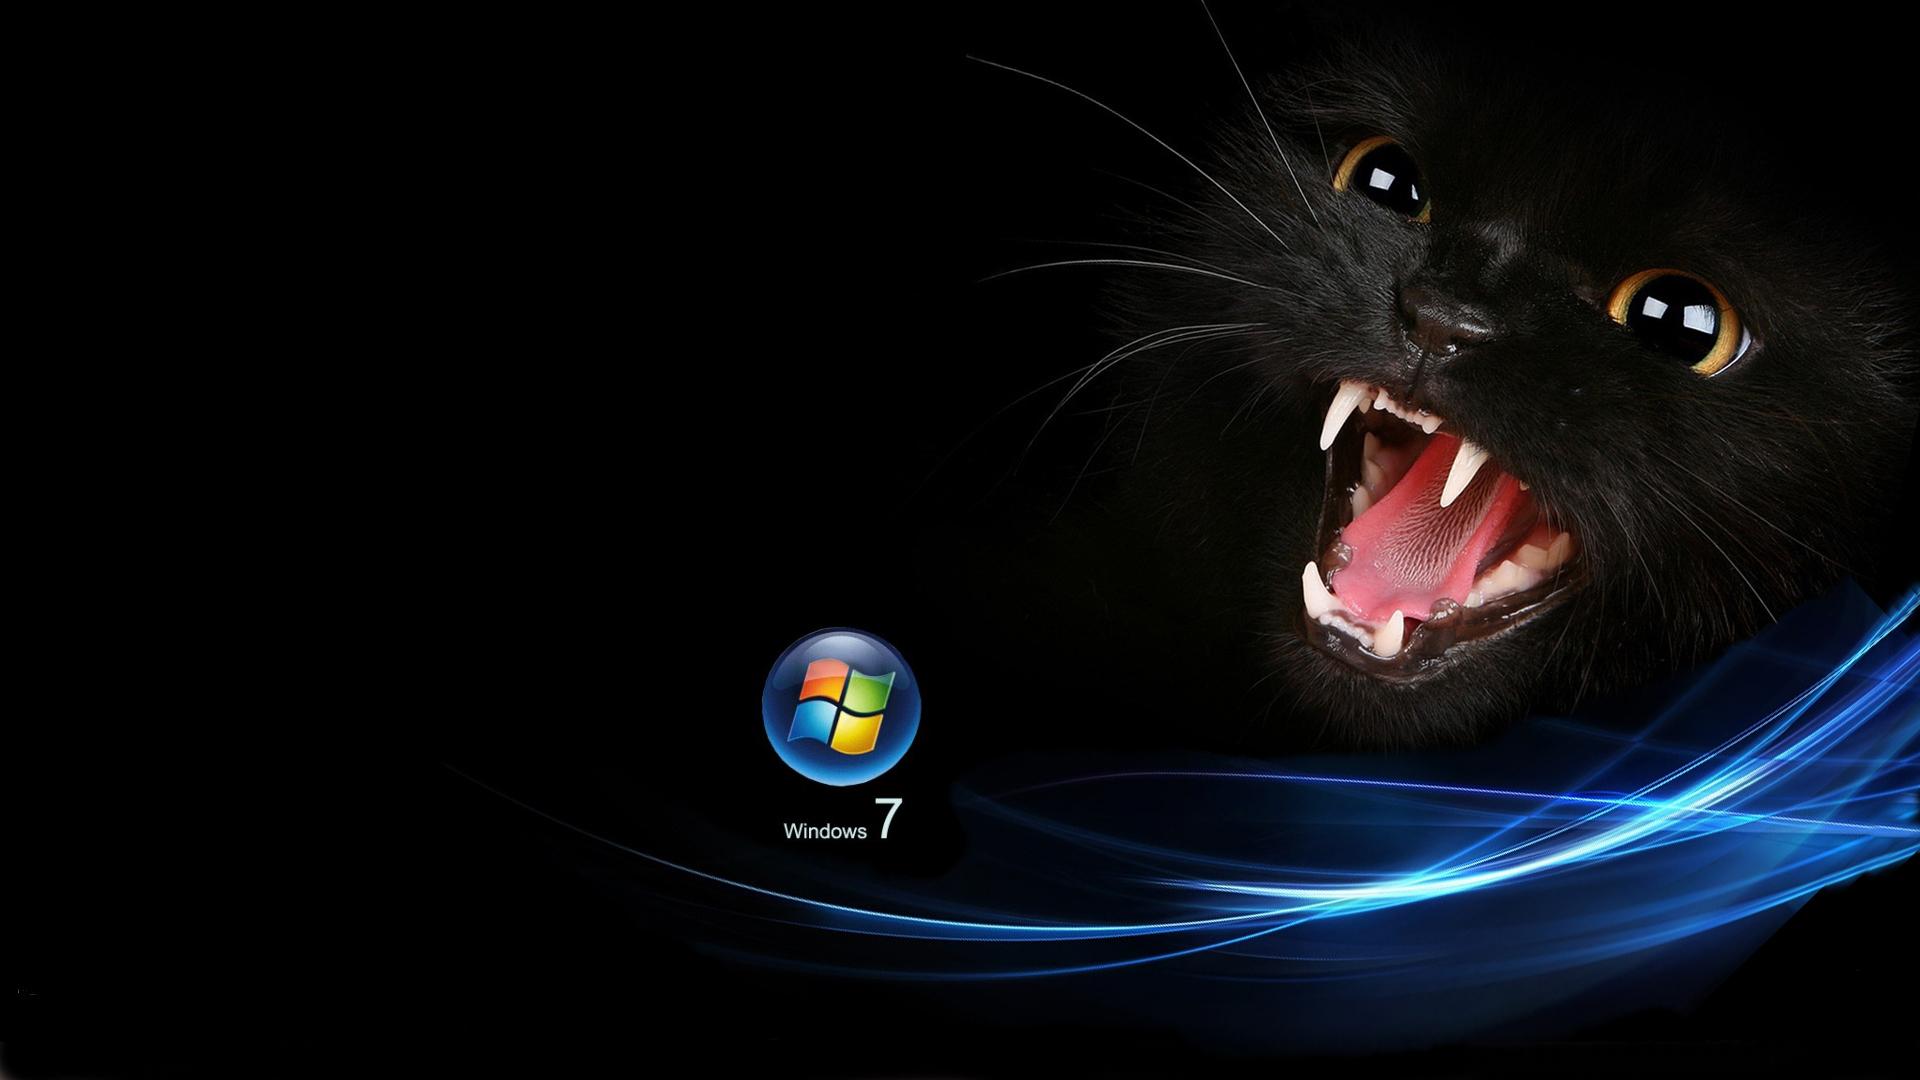 Windows 7 cat 2